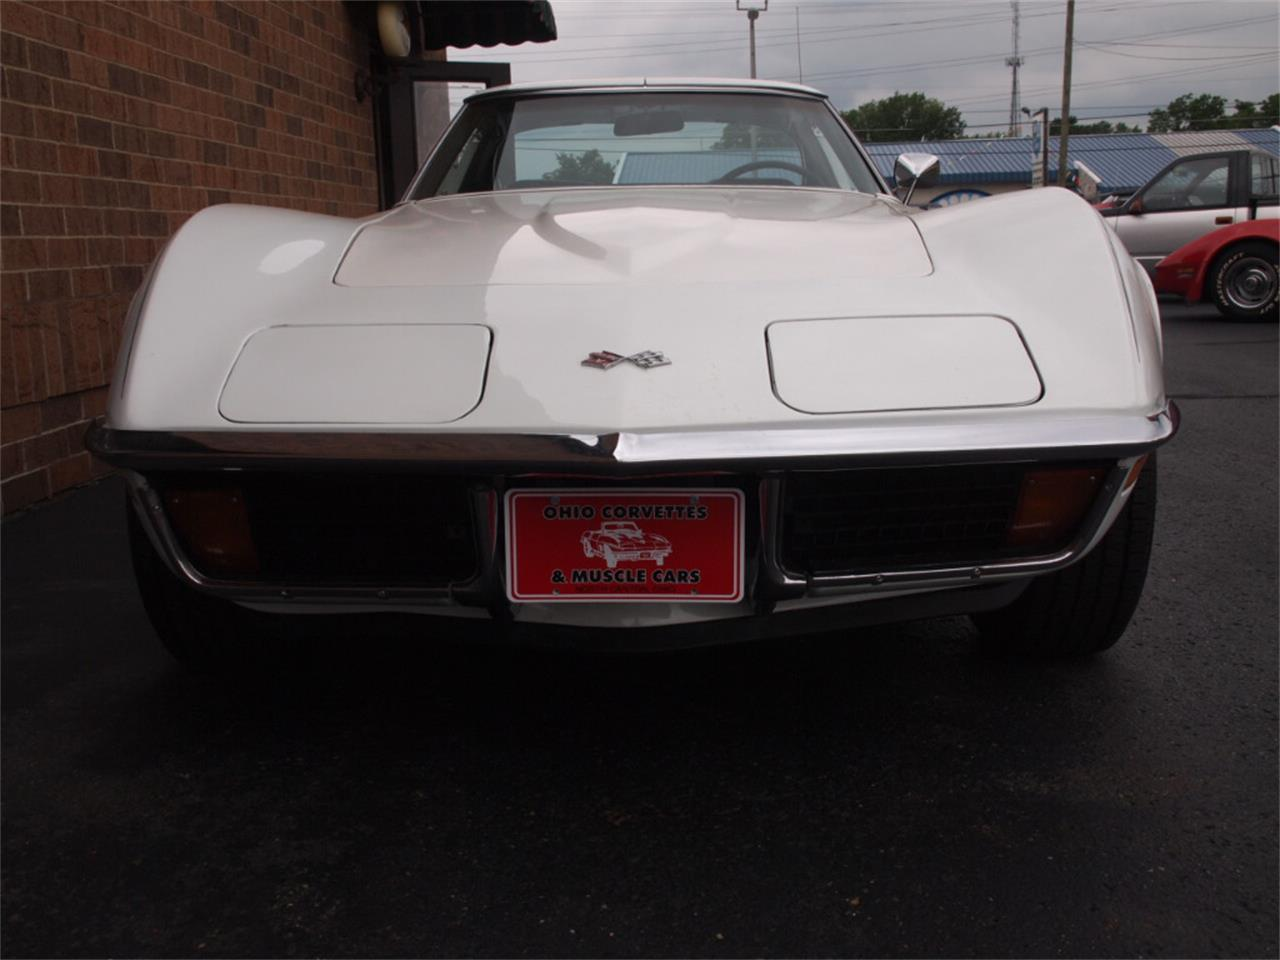 Large Picture of Classic '72 Corvette located in Ohio - $25,500.00 Offered by Ohio Corvettes and Muscle Cars - KYTP